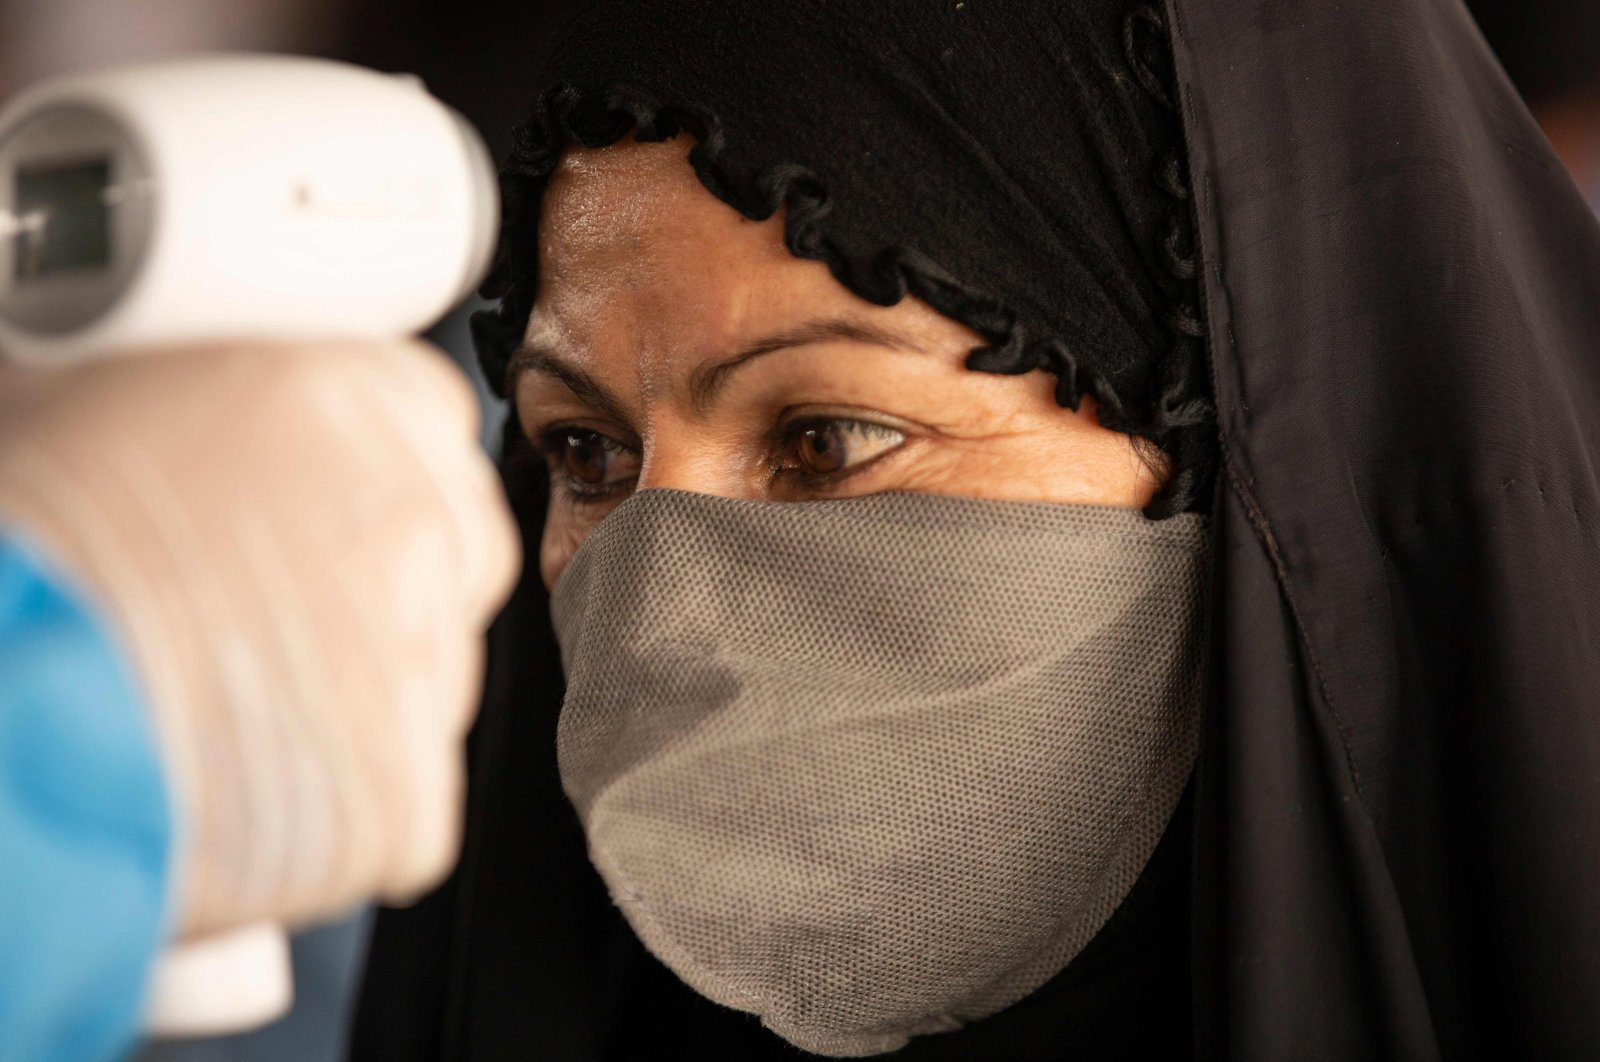 An Iraqi woman who had been stranded in Iran due to the coronavirus pandemic, gets her temperature checked by a health worker upon her arrival to Iraq via the Al-Shalamija border crossing, west of the southern city of Basra, Iraq, May 27, 2020. (AFP Photo)